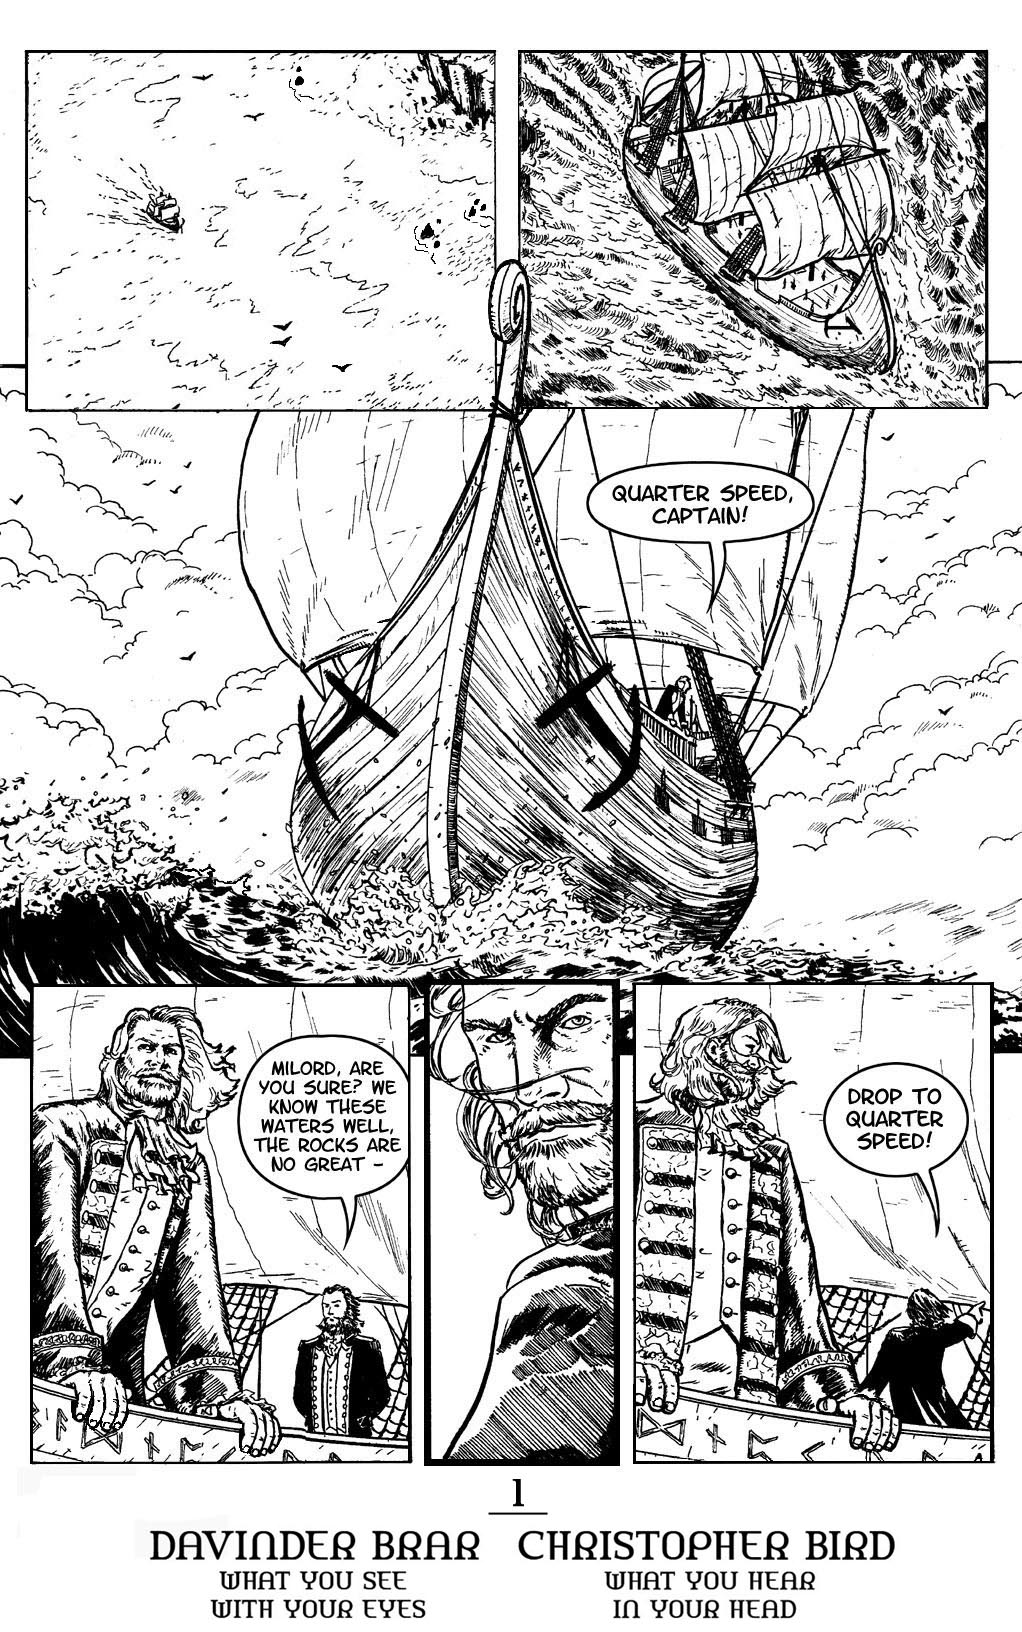 Book 1, page 1